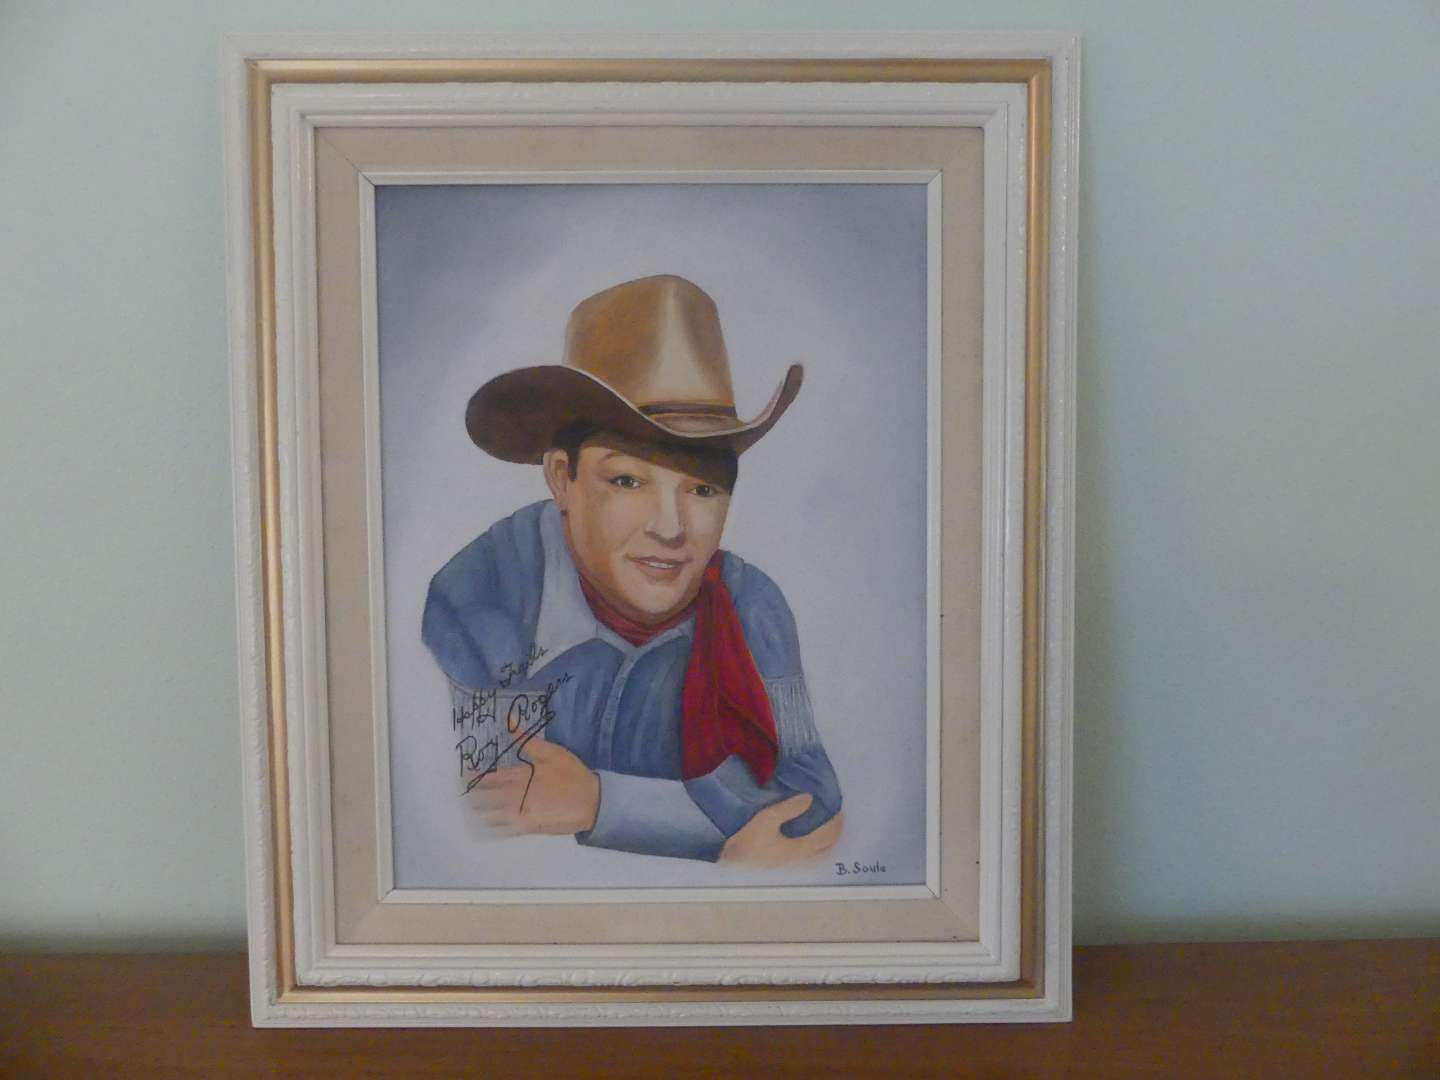 """Lot #110 Signed (B. Soule)/Framed Painting of """"Autographed"""" Roy Rogers Photo"""